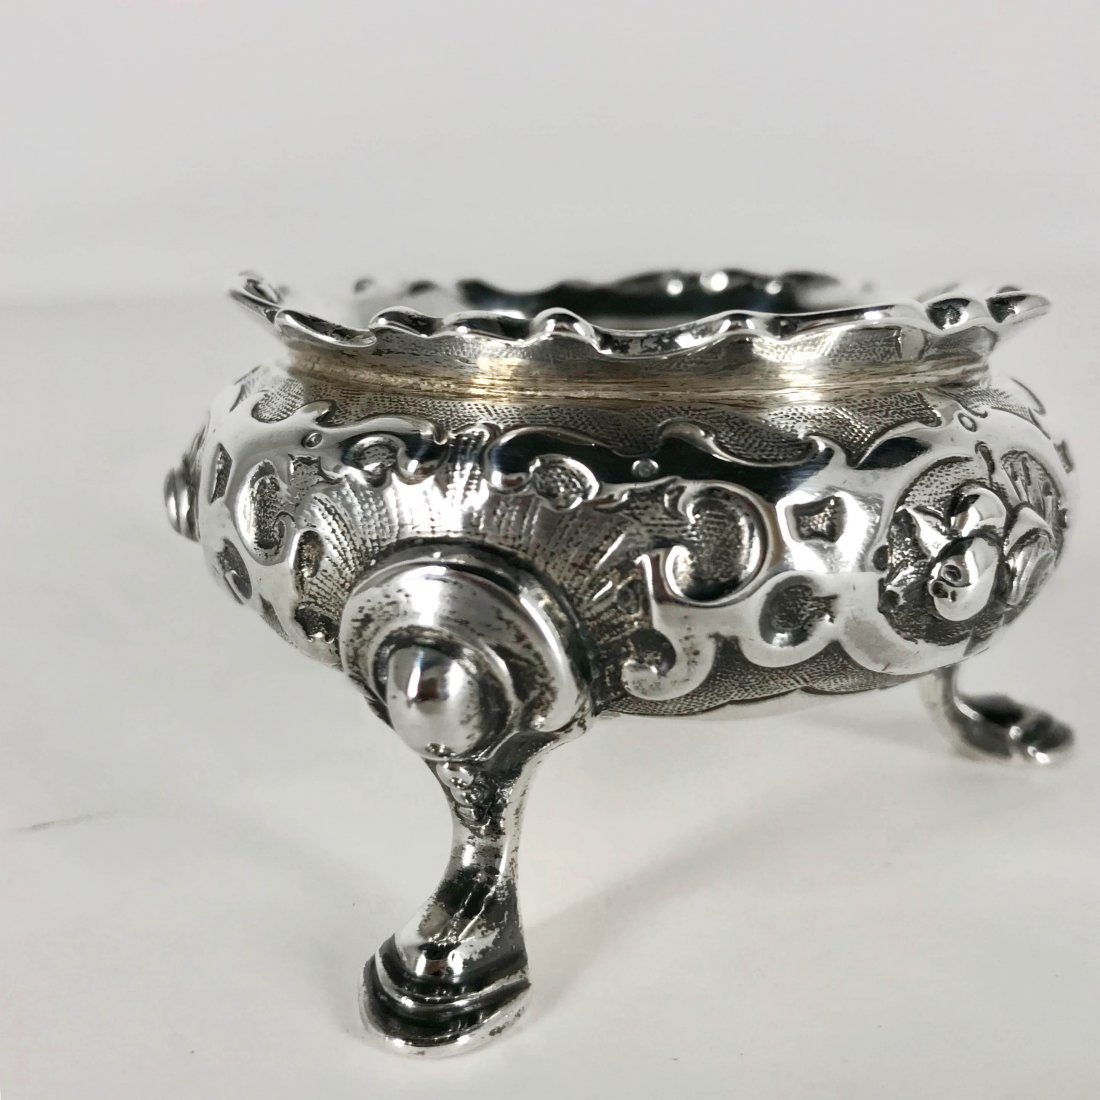 Antique Marked Sterling Silver Repousse Salt Cellar - 2